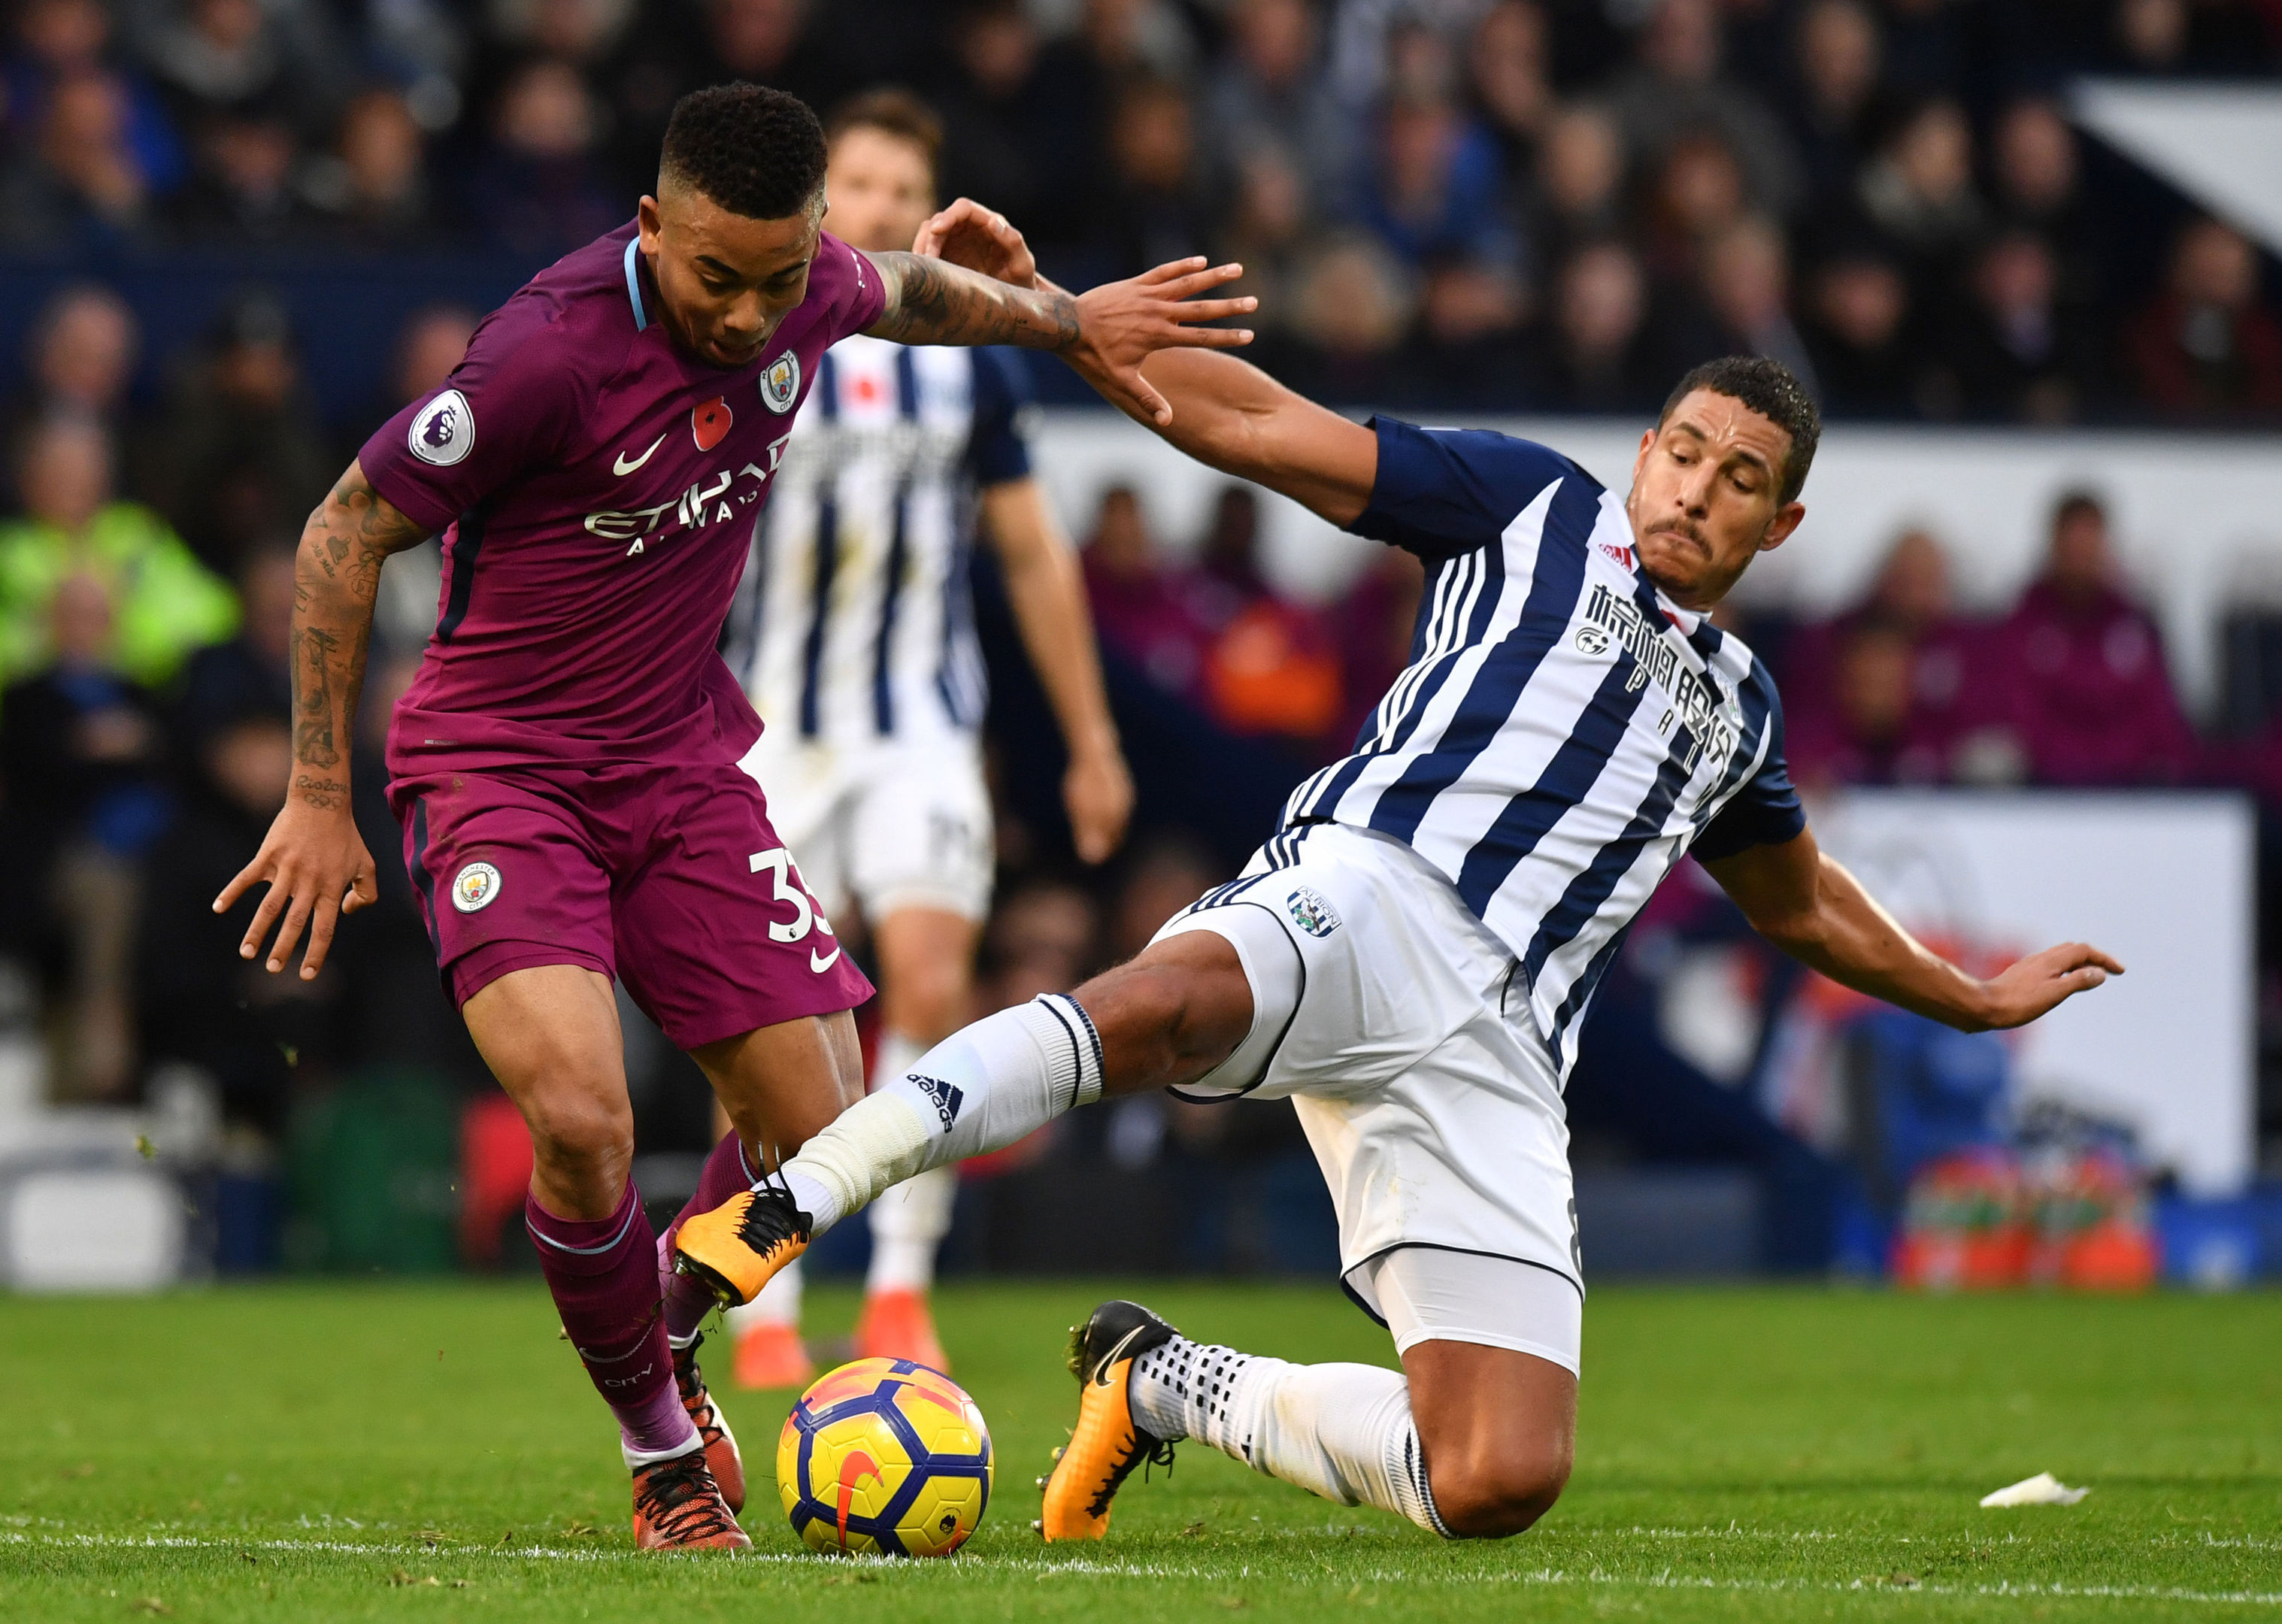 Manchester City's Gabriel Jesus (left) and West Bromwich Albion's Jake Livermore battle for the ball during the Premier League match at The Hawthorns, West Bromwich. (Anthony Devlin/PA Wire)